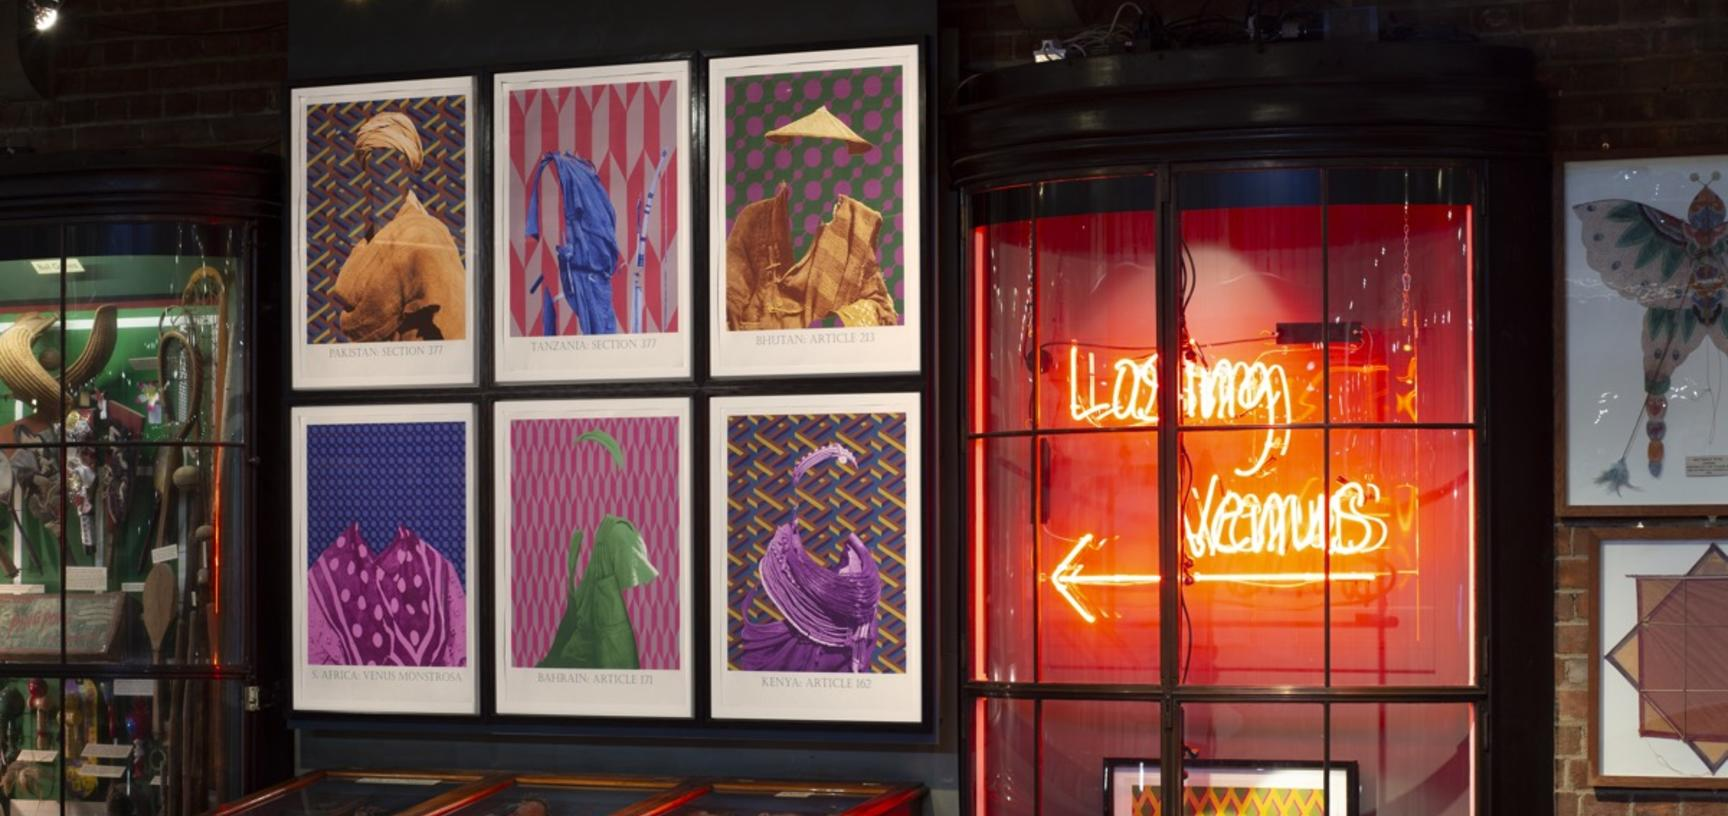 'The Prints' by Matt Smith, display comprising part of his exhibition 'Losing Venus', Pitt Rivers Museum, University of Oxford, 4 March to 29 November 2020.